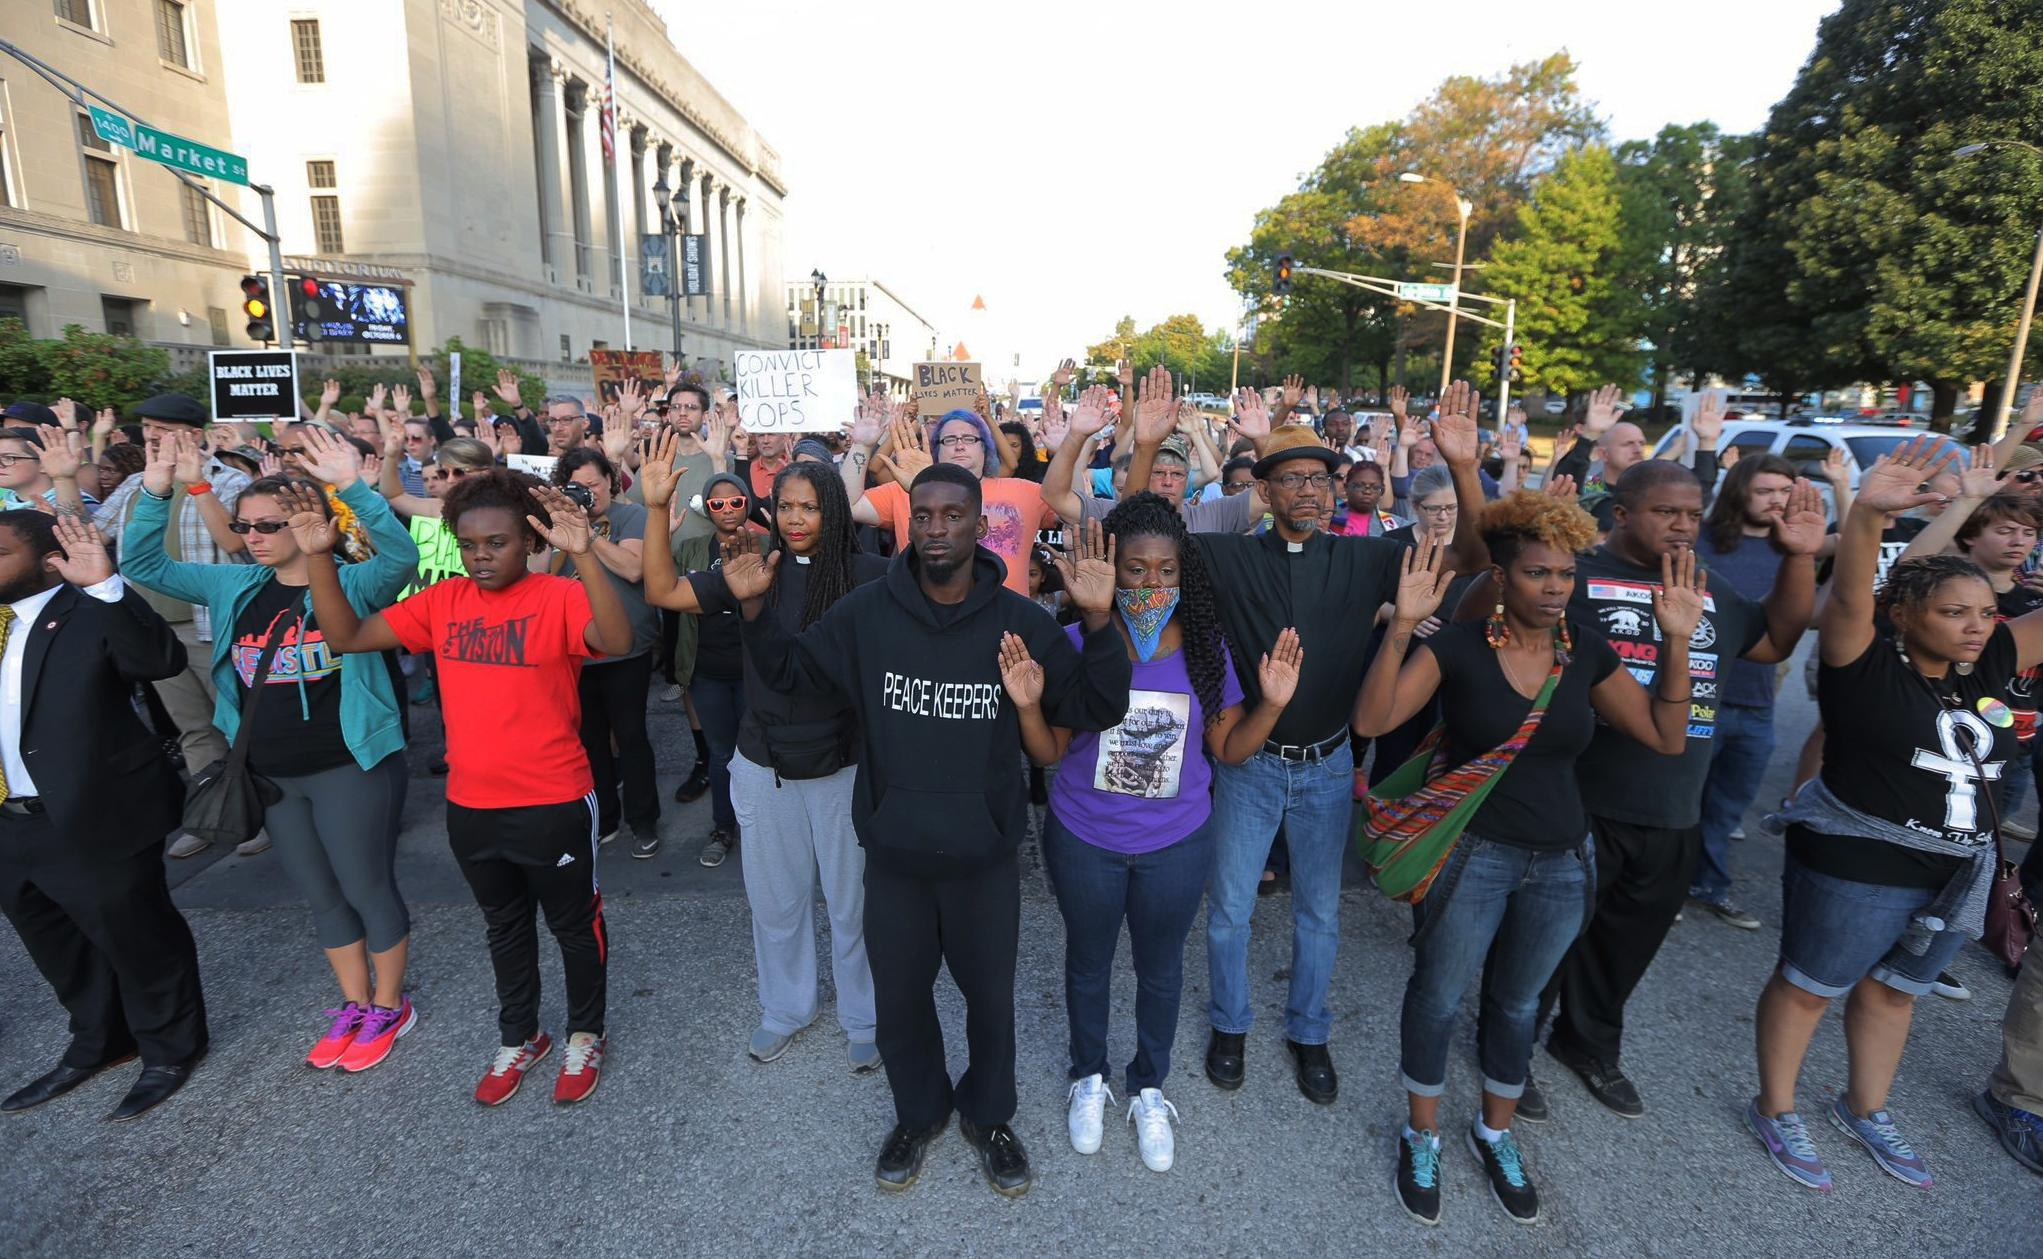 Protesters march in silence down Market Street in St. Louis on Monday, Sept. 18, 2017, in response to a not guilty verdict in the trial of former St. Louis police officer Jason Stockley. Stockley was acquitted on Friday in the 2011 killing of a black man following a high-speed chase. (Cristina Fletes/St. Louis Post-Dispatch via AP)